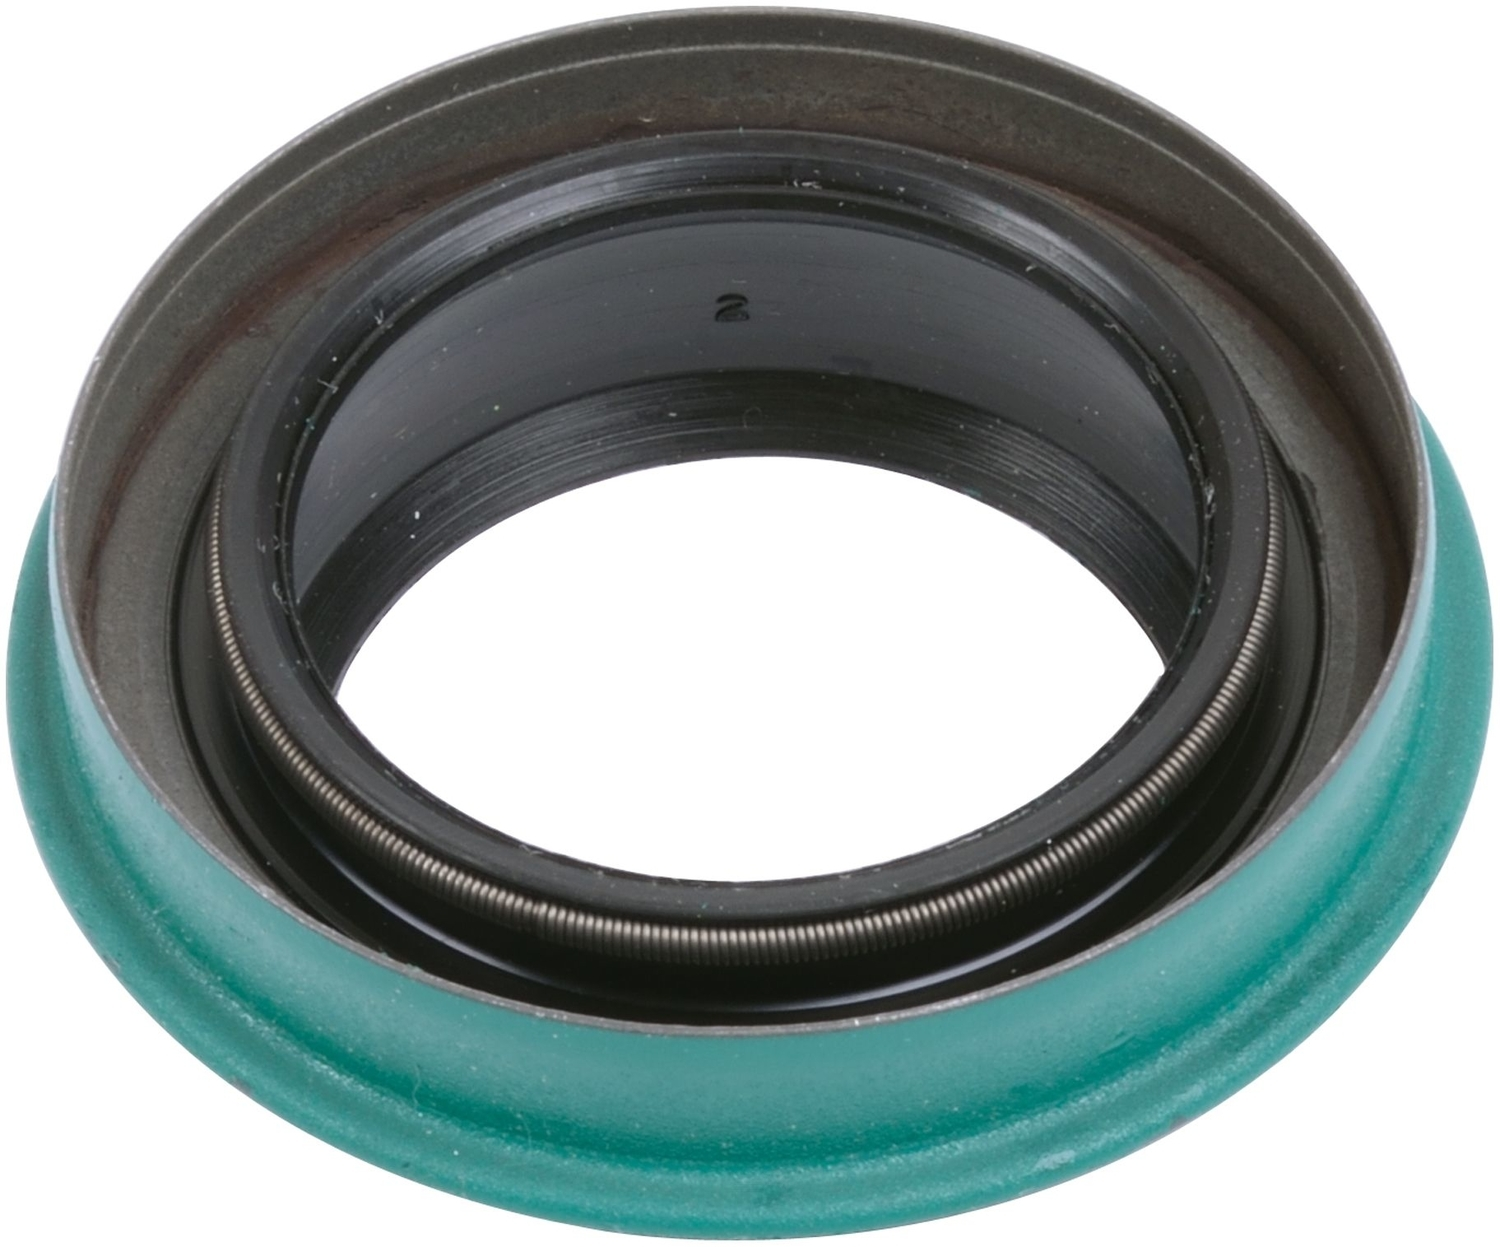 SKF (CHICAGO RAWHIDE) - Auto Trans Extension Housing Seal - SKF 16725